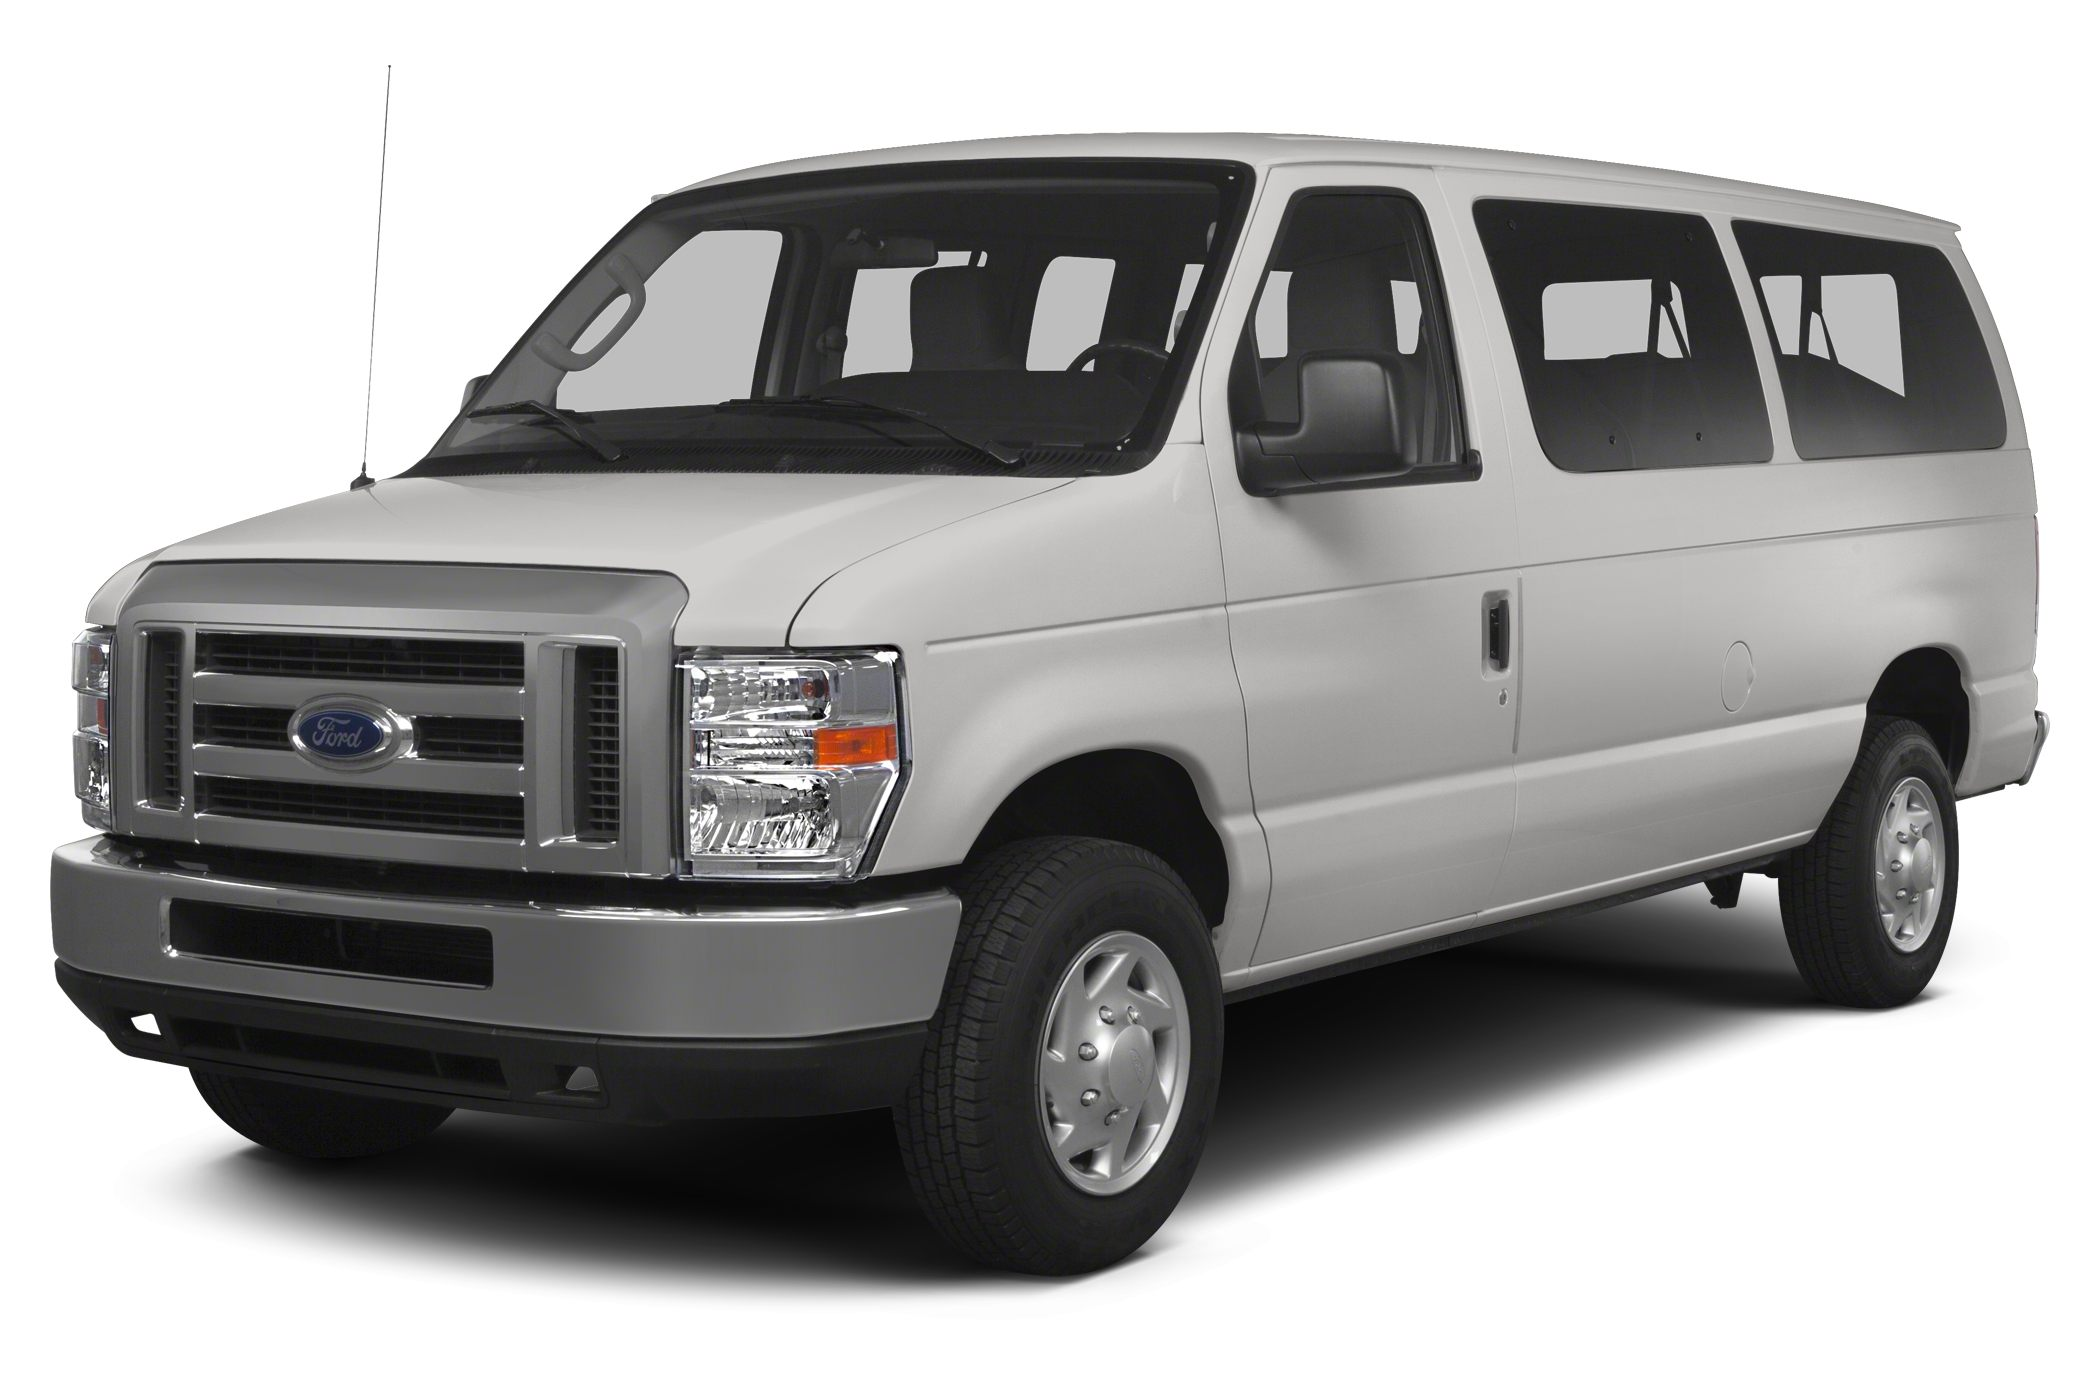 2013 Ford Econoline 350 Super Duty  Tired of the same dull drive Well change up things with this s